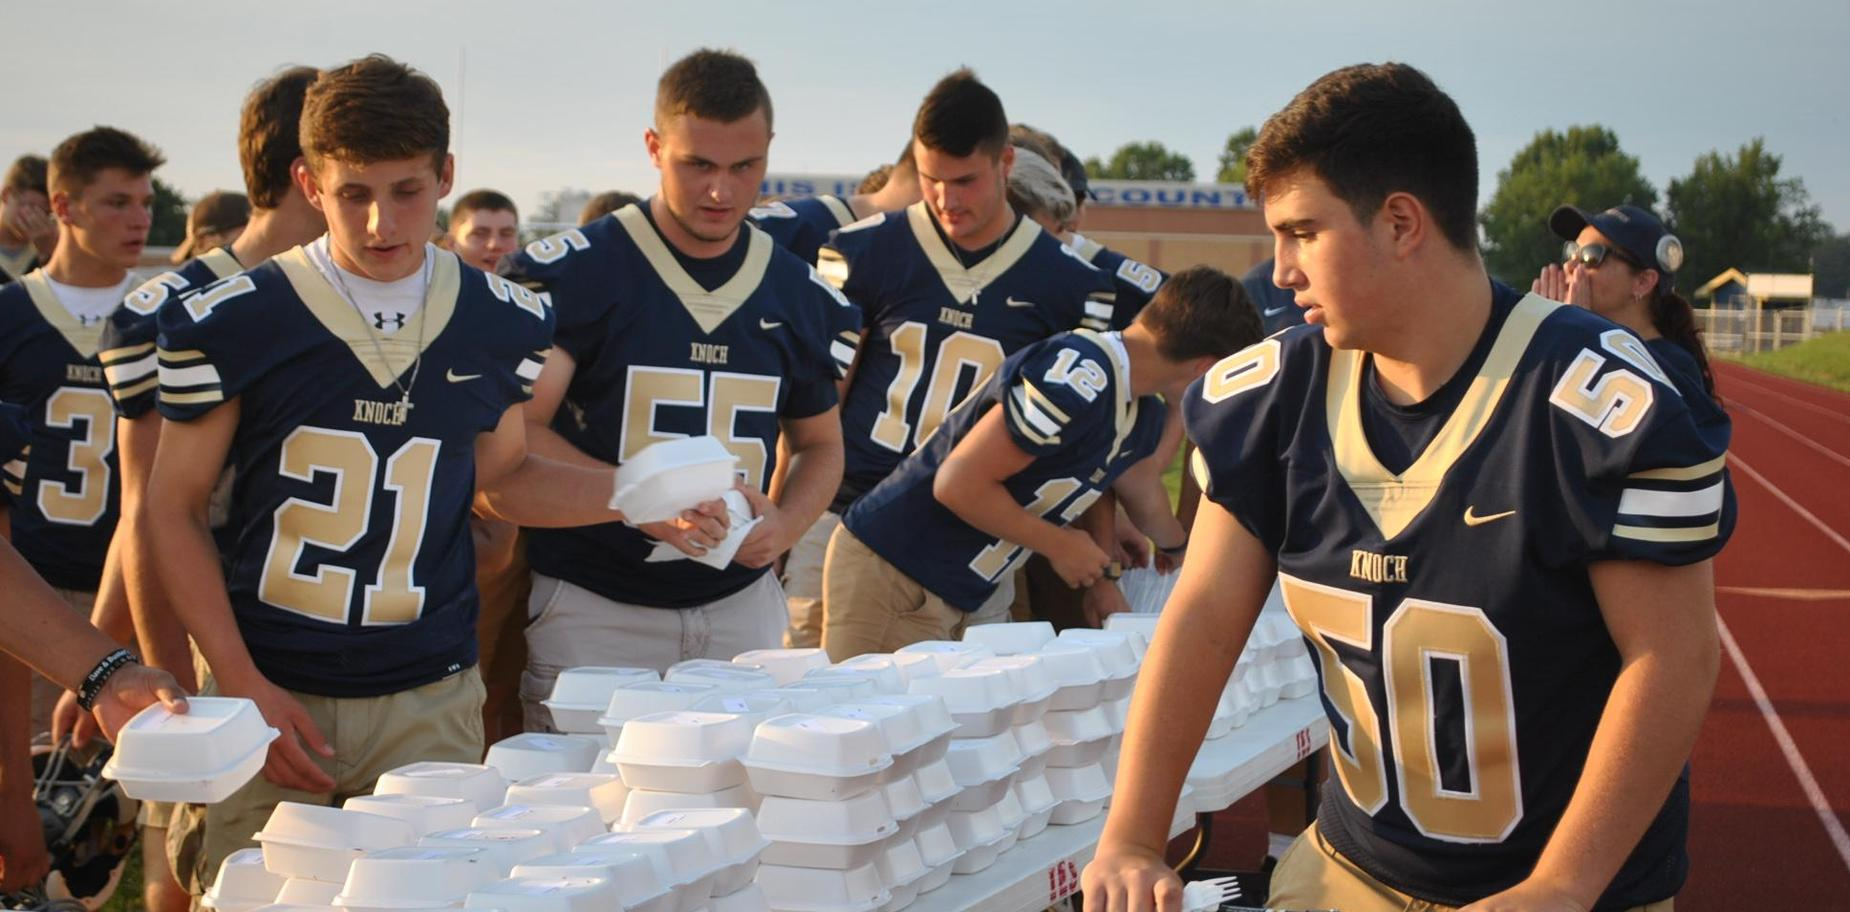 Football players getting pie at Pie Night